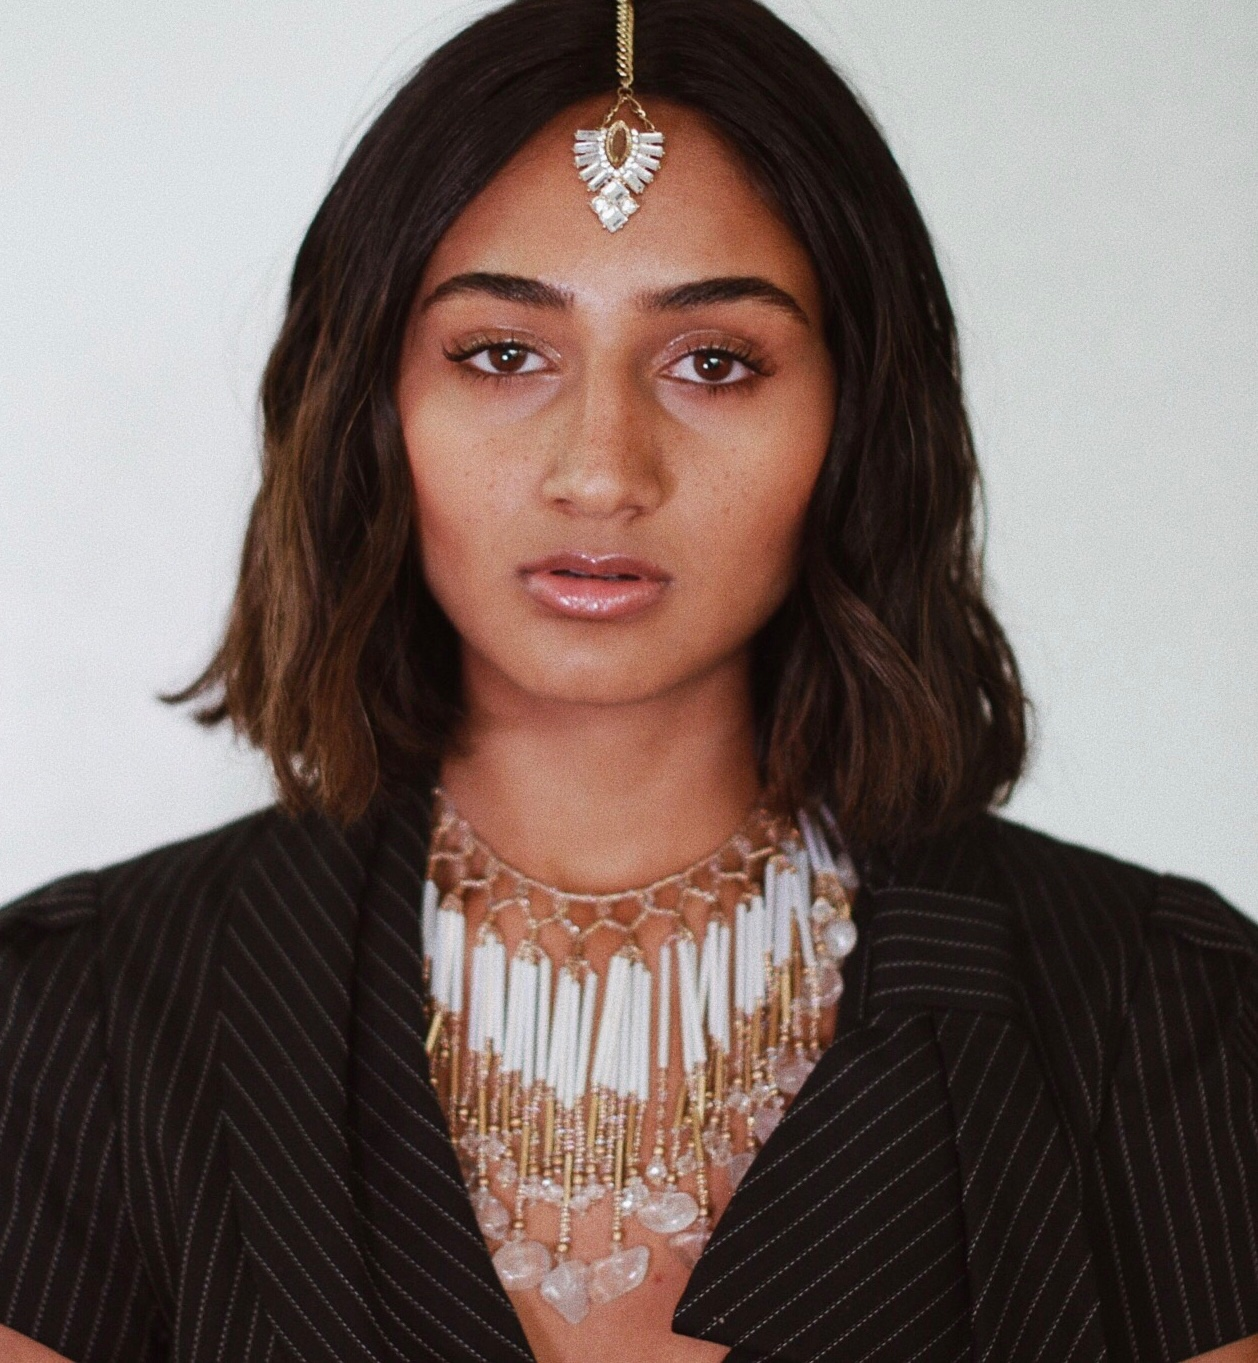 """RHEA RAJ  is a pop singer and songwriter in NYC.  She competed in American Idol's farewell season, and her audition aired on national TV in 2016. The following year, MTV featured two of her covers, """"New Rules"""" by Dua Lipa and """"I Got You"""" by Bebe Rexha, who praised Rhea's rendition on social media and a Glamour Magazine.  Rhea Raj's collaborations with producers and artists worldwide have garnered millions of streams through major record labels including Sony Music, Armada Records, and Future House Music. Recent releases have placed in LA Galaxy's """"Best Moments"""" video and been shared by The Chainsmokers, Tiesto, and Nicky Romero. Music videos for """"Feel Again,"""" """"Far Away,"""" """"Tidal Waves,"""" and """"Rewind"""" debuted in 2017.  Rhea starred in her first short film,  Hasim October , which premiered at NYU's Cantor Film Center in 2017. She has performed at prestigious venues including the Dolby Theatre in LA, Skirball Center for a United Nations event, House of Blues, and TV channels including FOX, CBS, and ABC.  In 2018, Rhea Raj released her single """"Insecurities."""" She fuses electronic and world sounds into her music, and cites Rihanna, Shakira, and M.I.A as influences. Rhea Raj has a notable international fanbase and looks forward to sharing her new projects."""